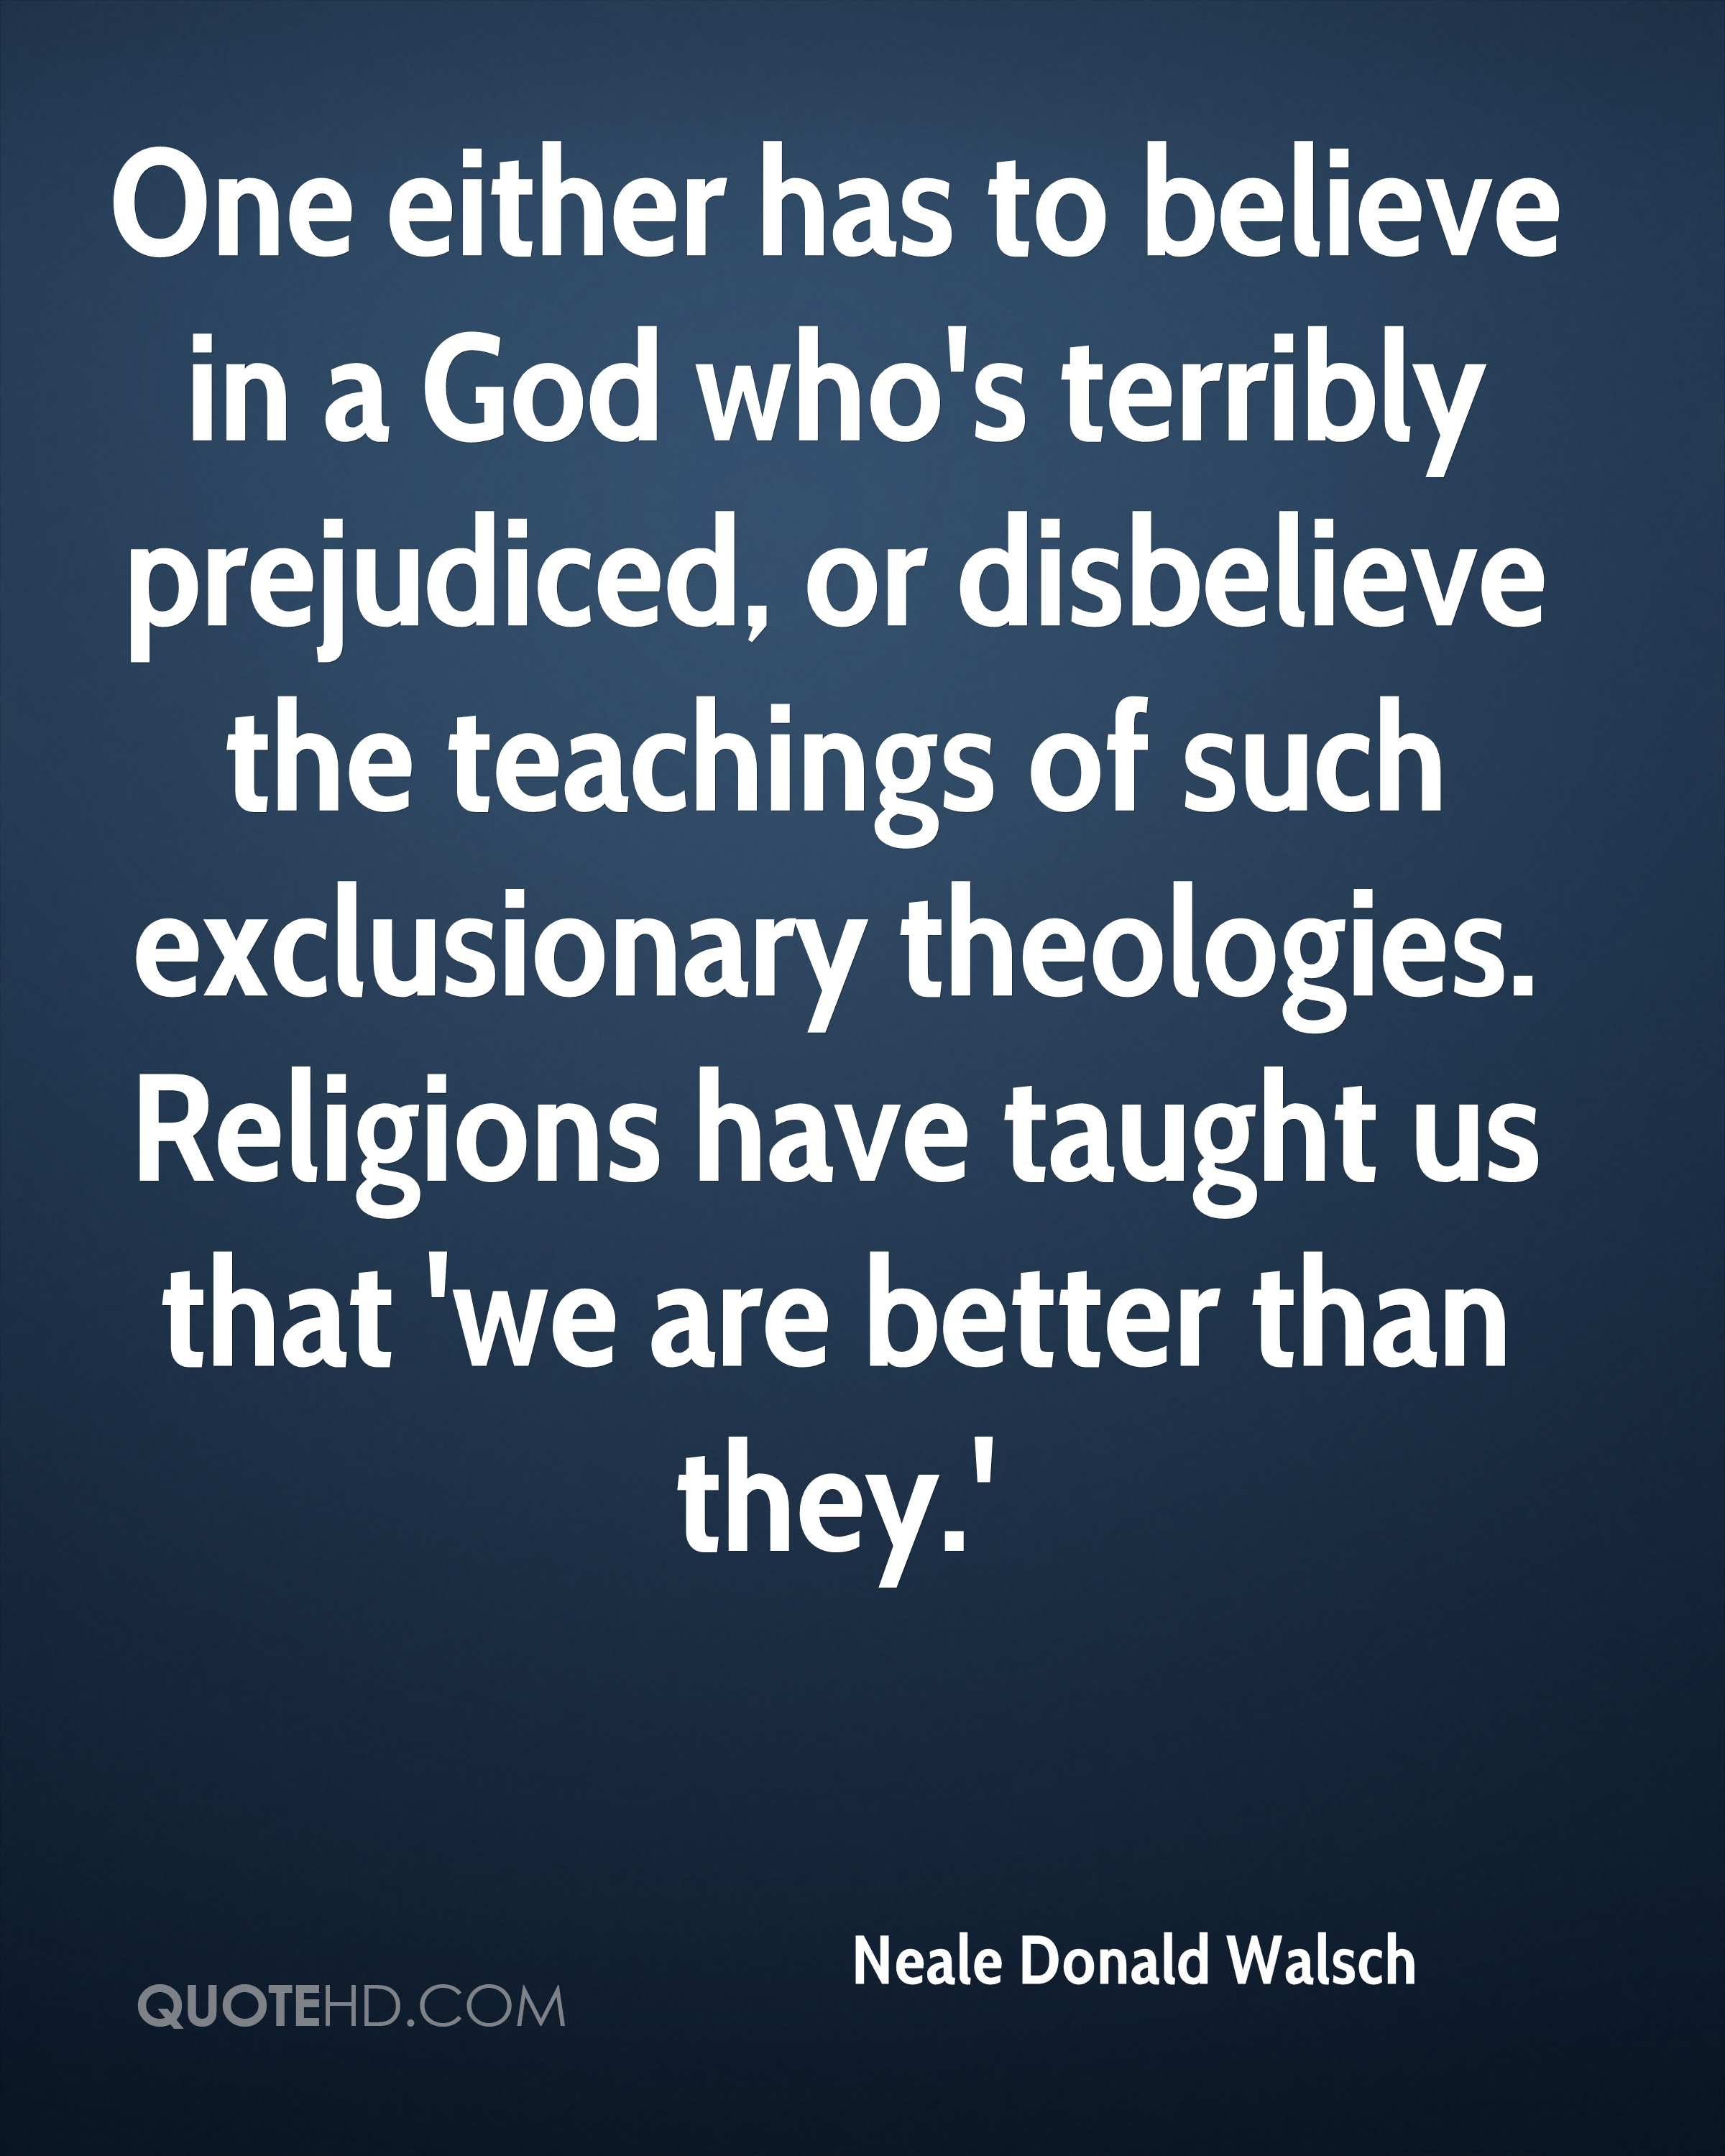 One either has to believe in a God who's terribly prejudiced, or disbelieve the teachings of such exclusionary theologies. Religions have taught us that 'we are better than they.'